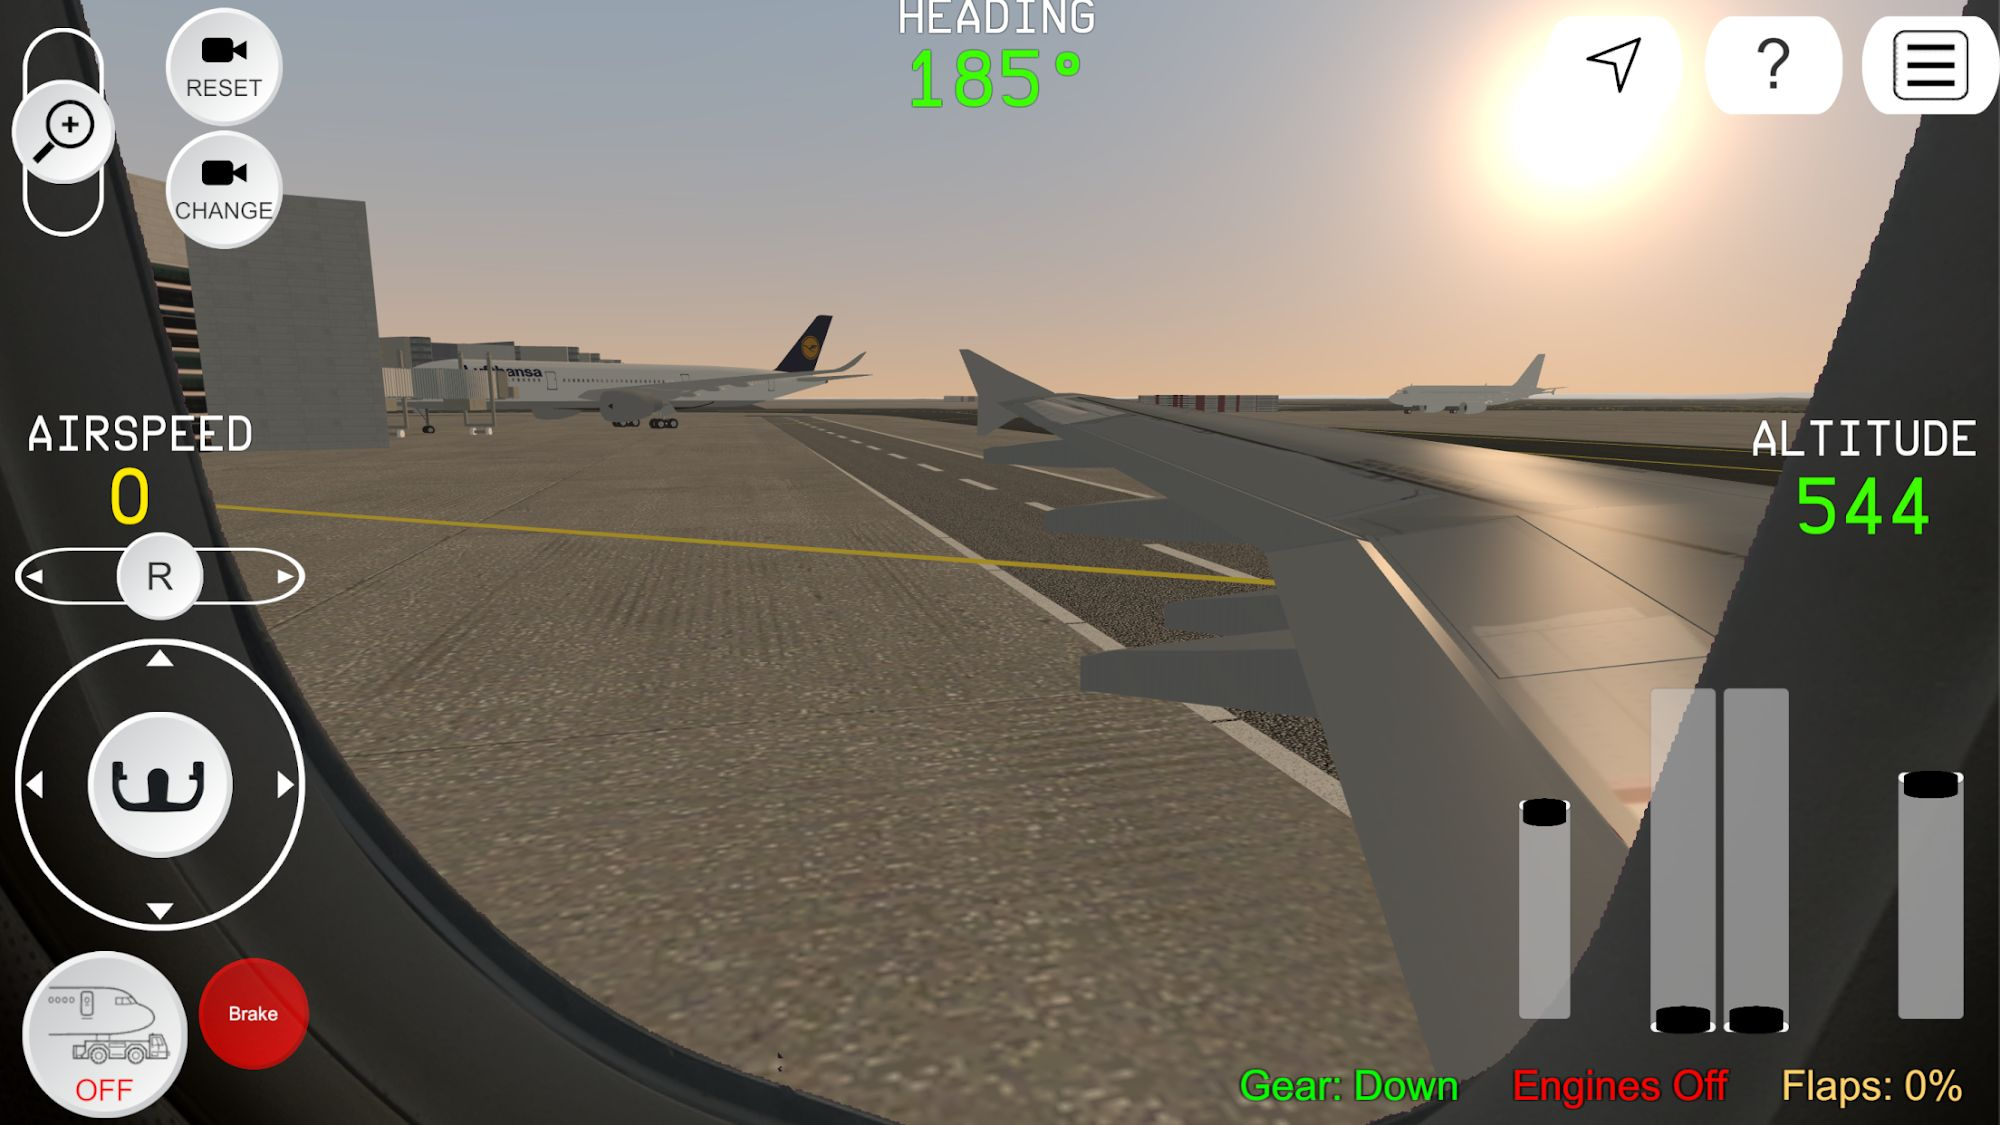 Flight Simulator Advanced screenshot 1